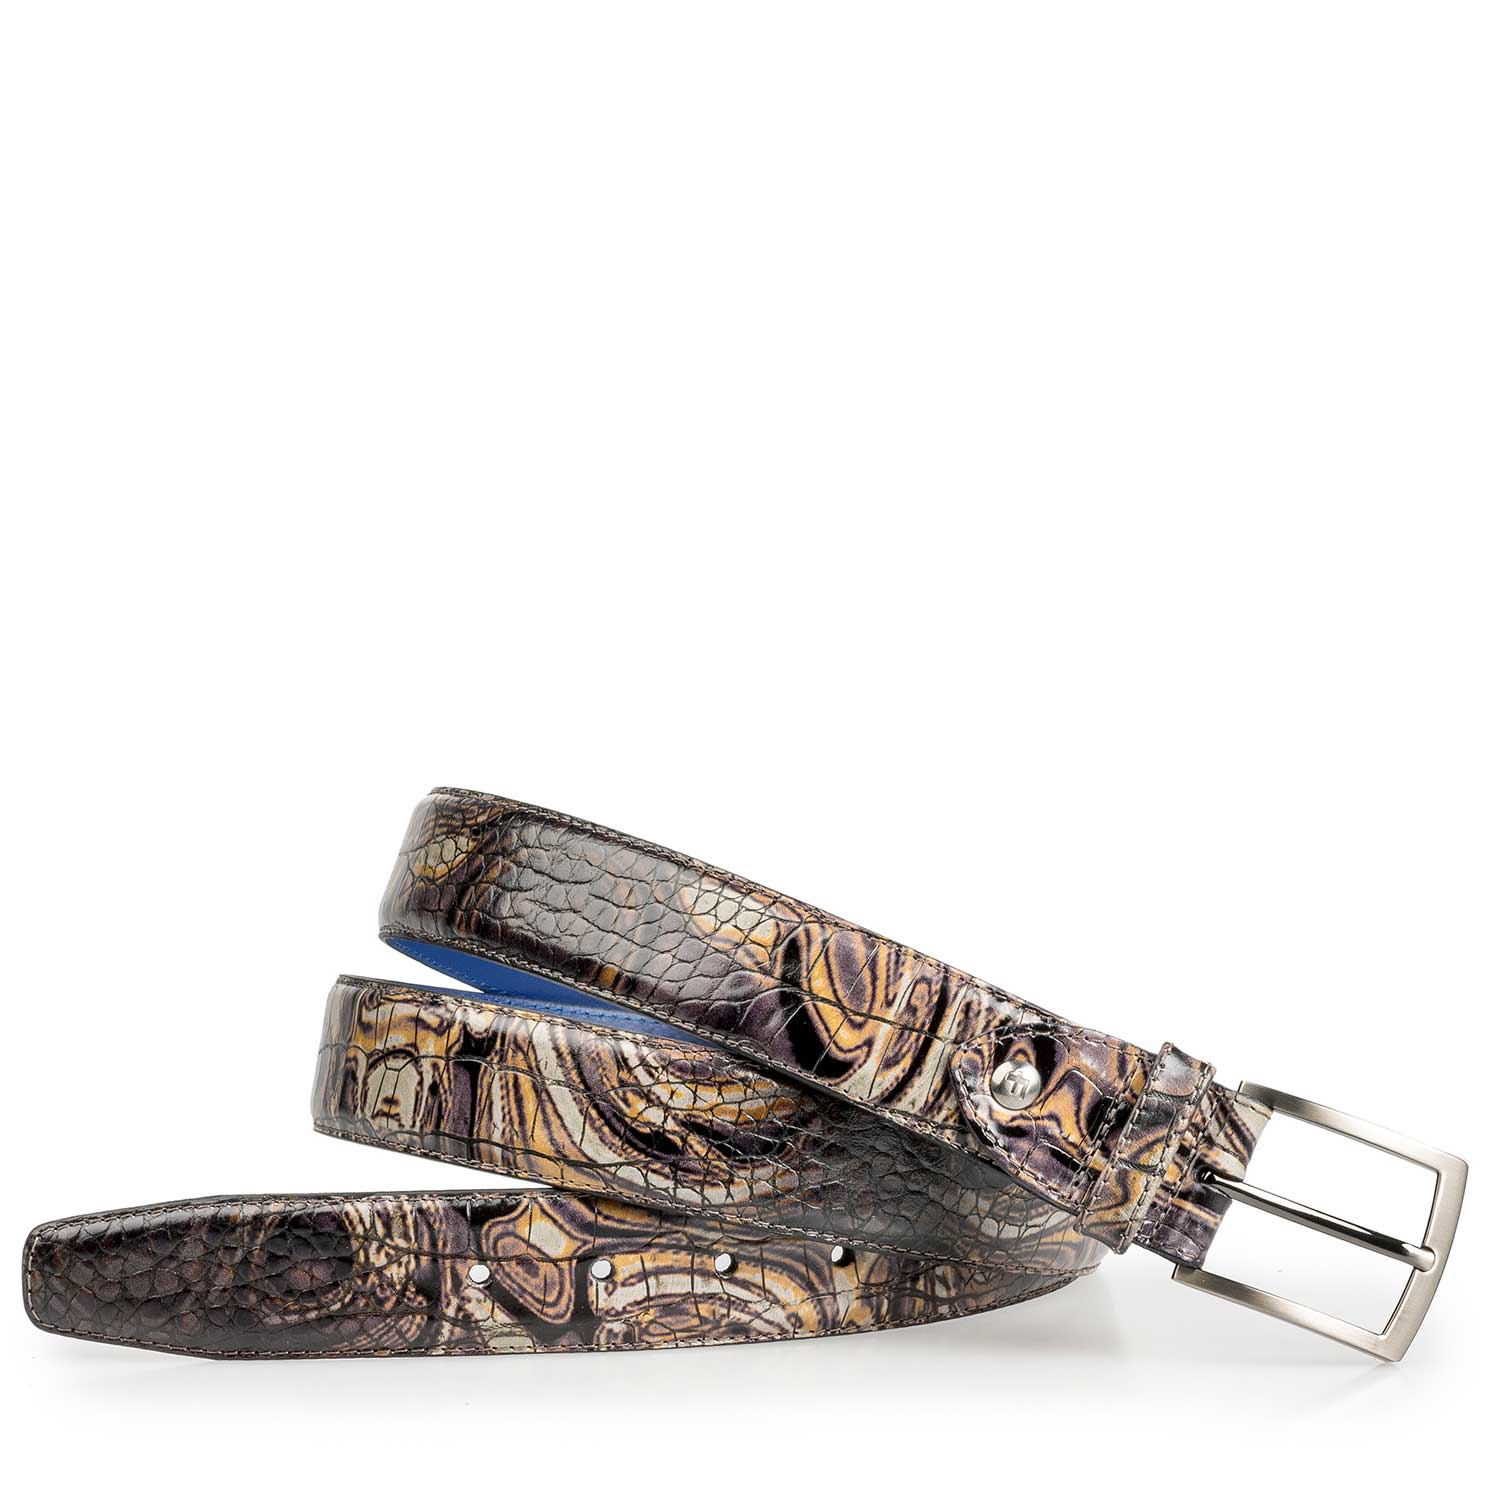 75190/33 - Grey Premium calf's leather belt with croco print